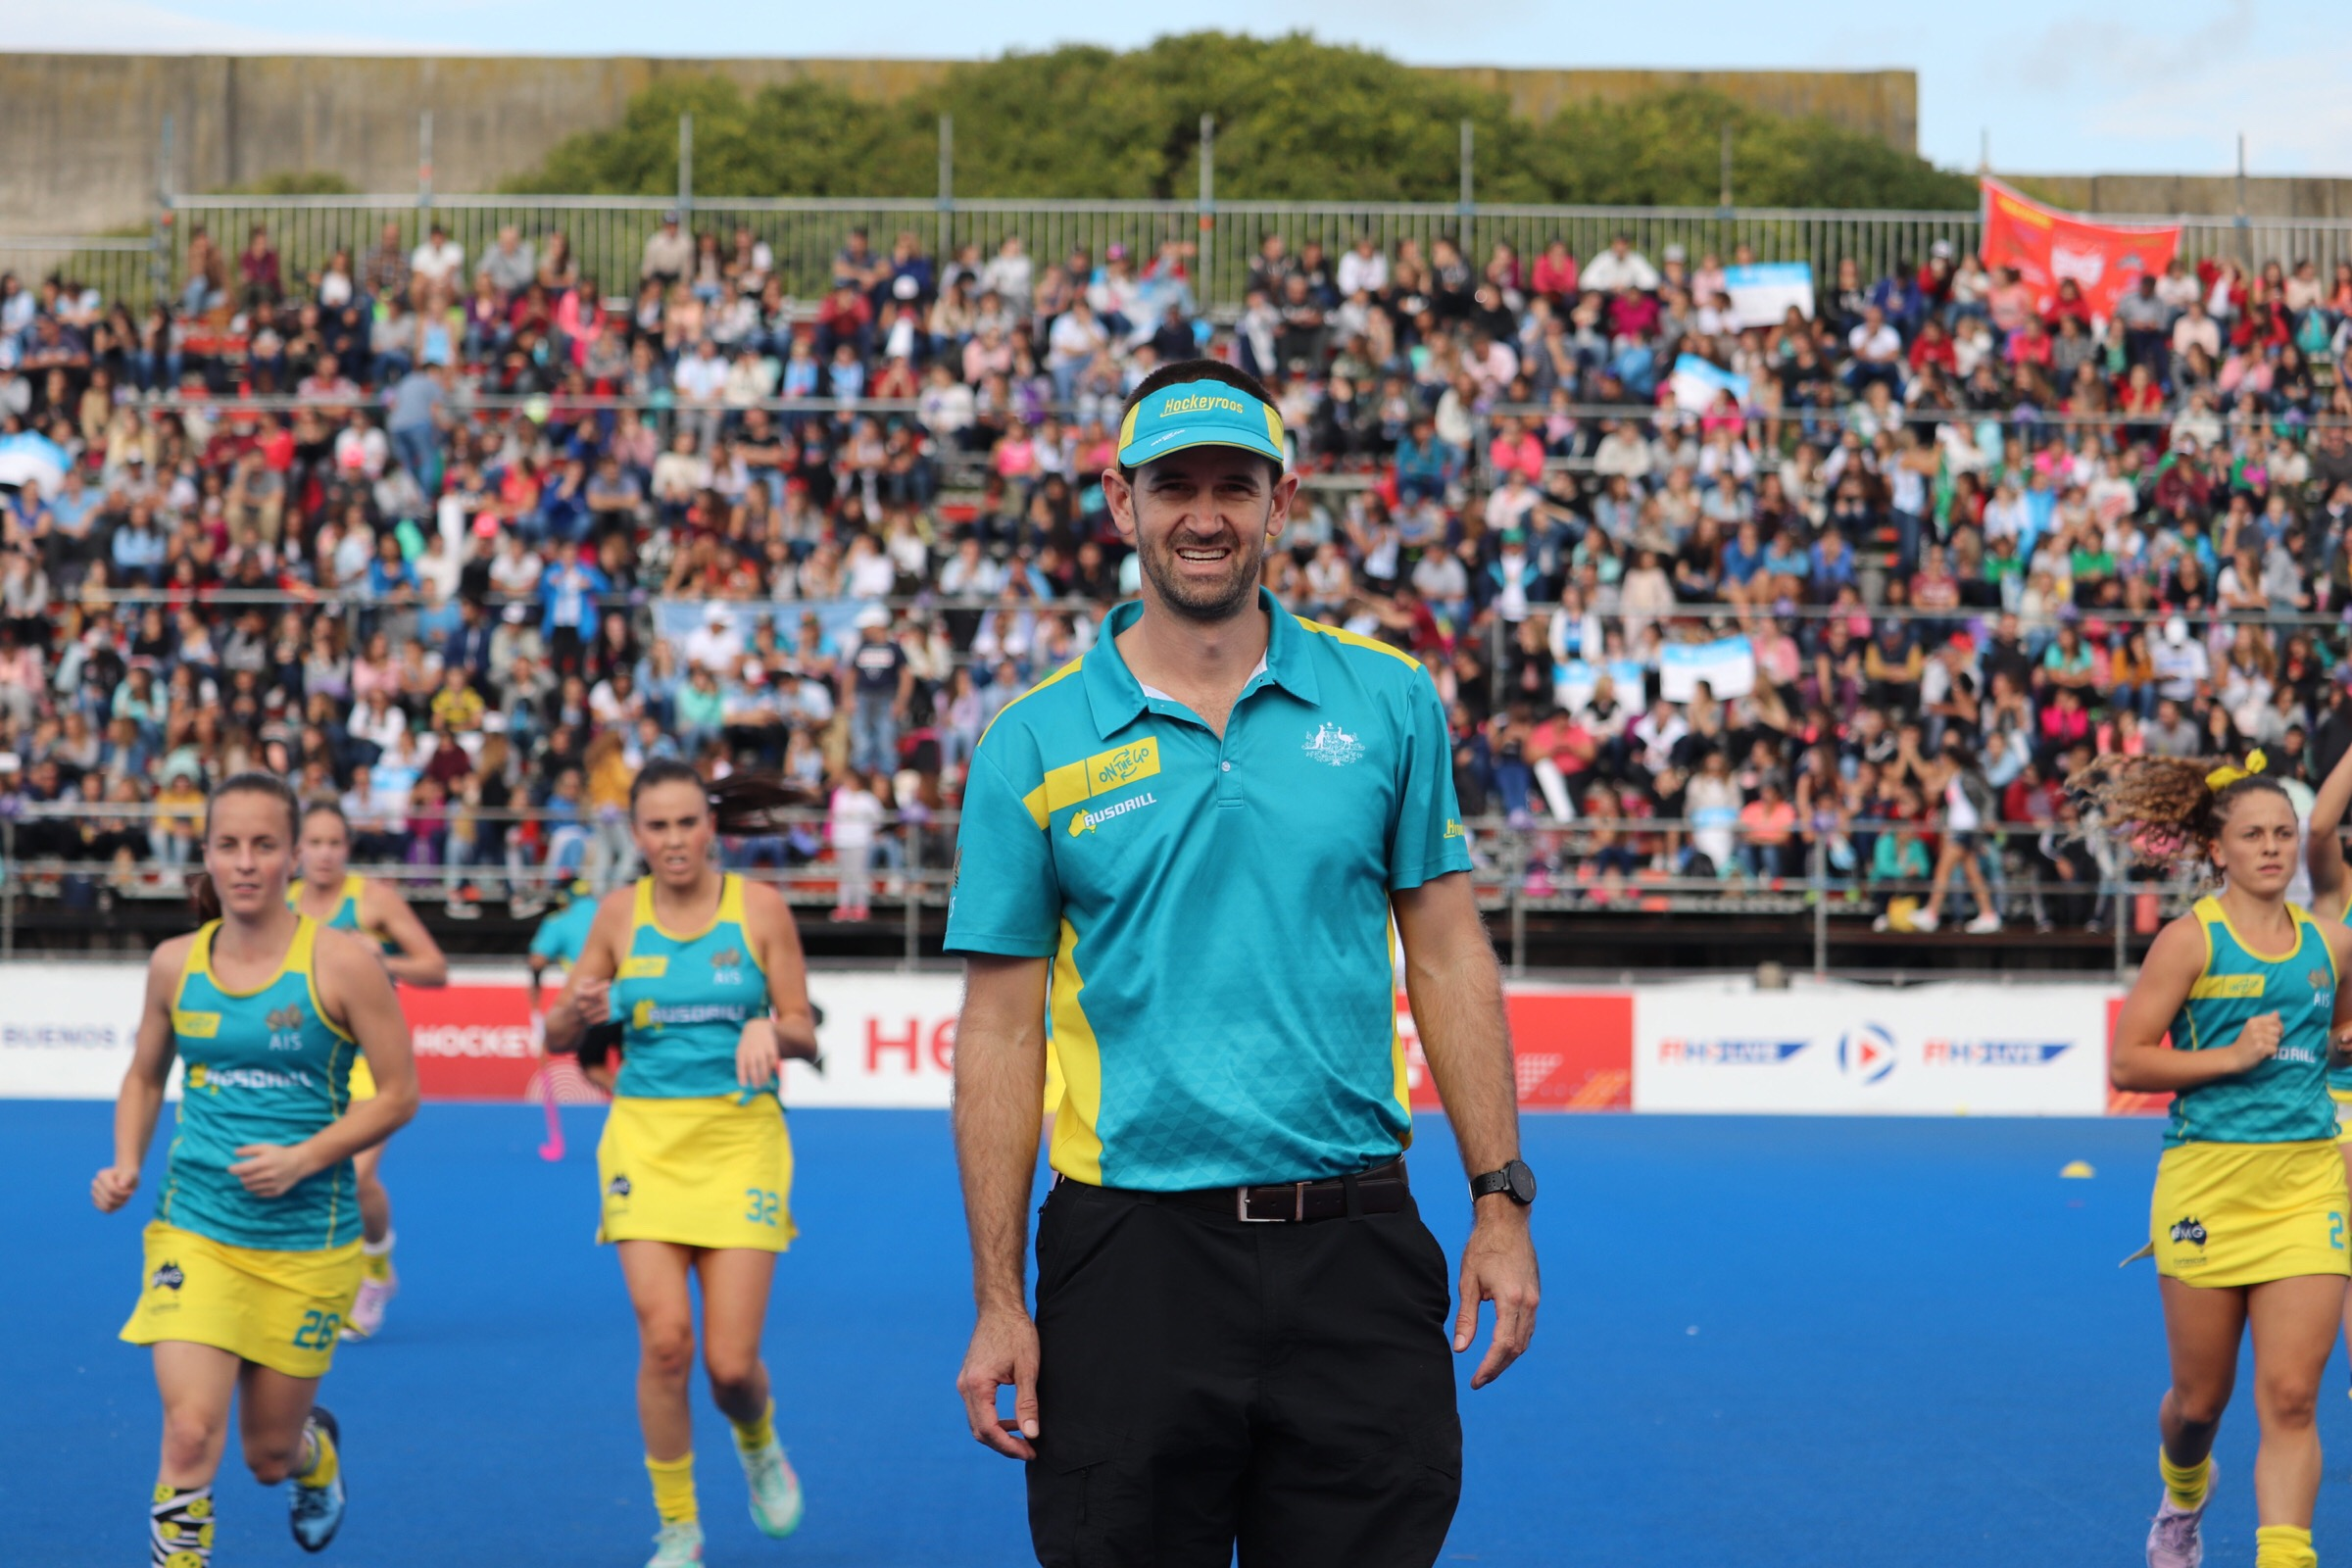 SASMA Member working with the Hockeyroos